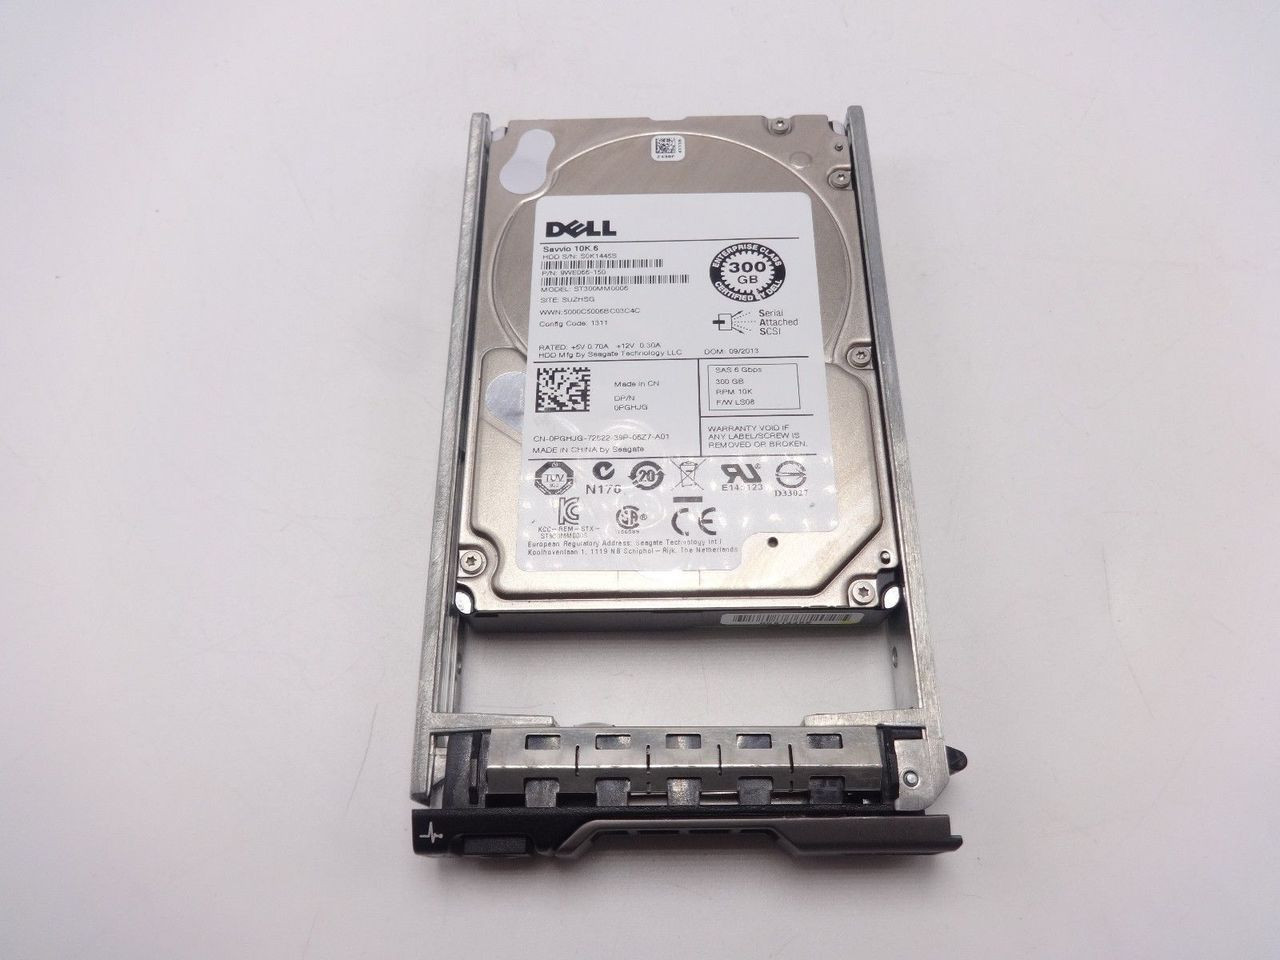 DELL PGHJG 300GB SAS 10K 2.5 6GBPS 9WE066-150 ST300MM0006